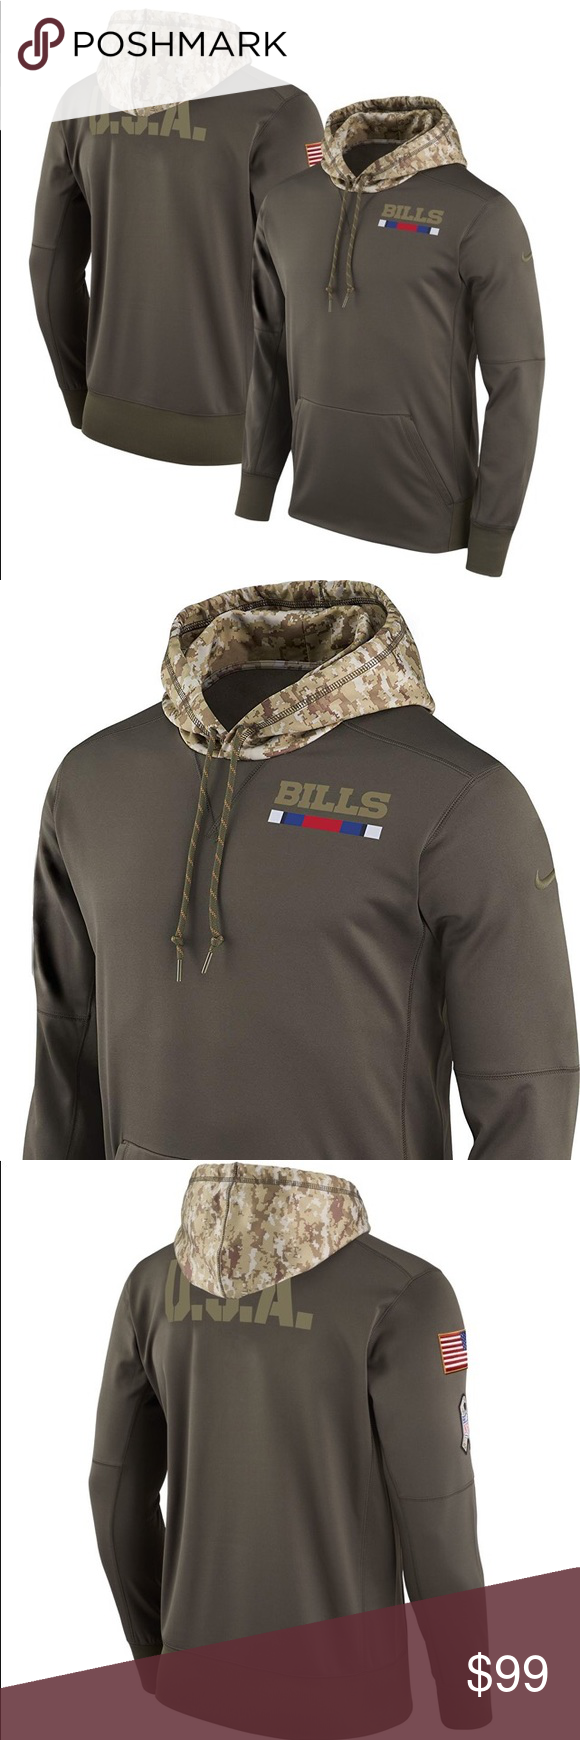 low priced cee56 f7f50 Nike Buffalo Bills Salute To Service Camo Hoodie Brand ...